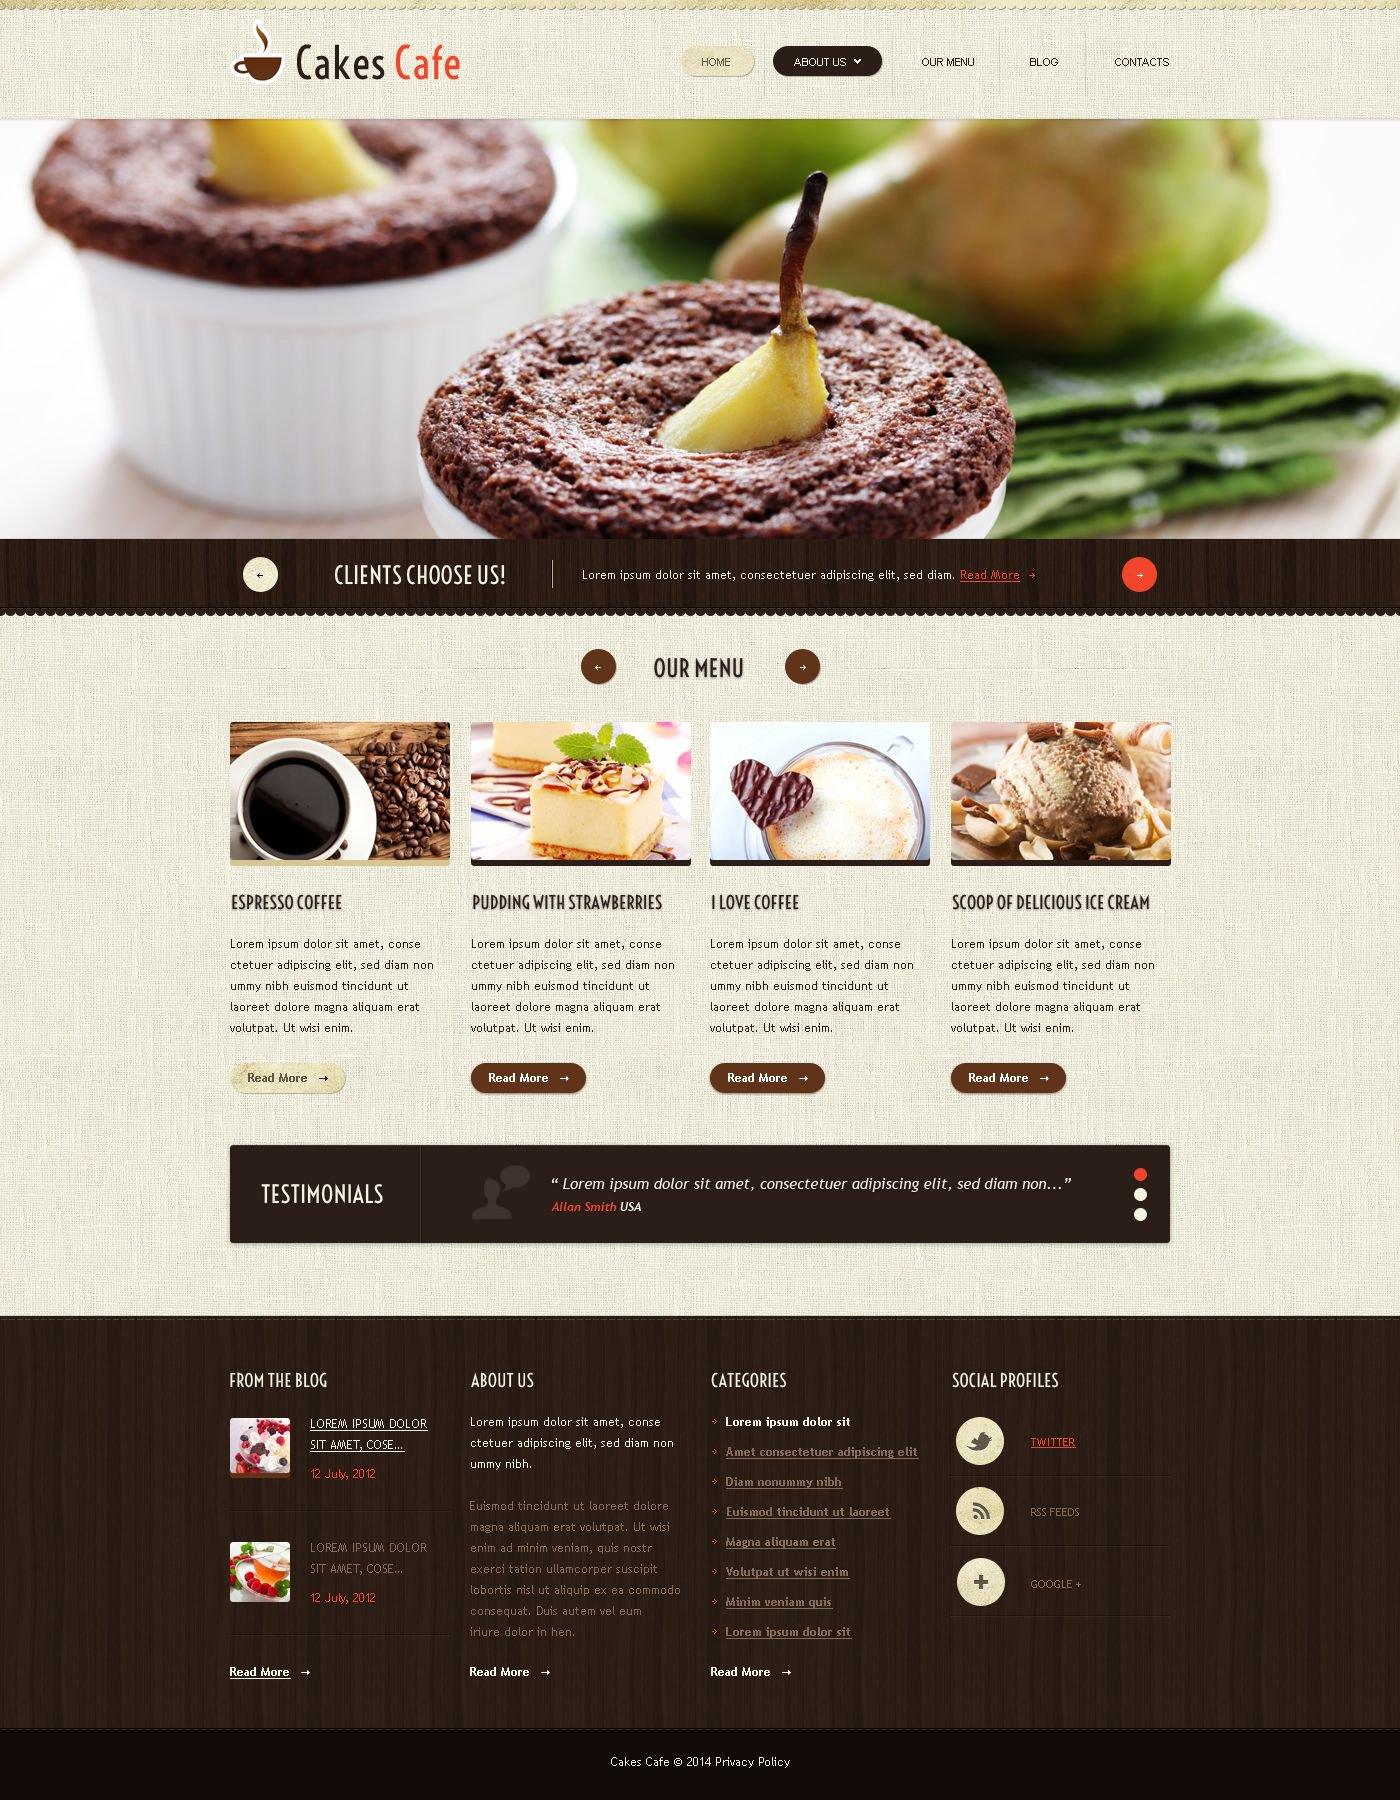 The Cafe Cake Blog Responsive Javascript Animated Design 52977, one of the best website templates of its kind (cafe and restaurant, most popular), also known as cafe cake blog website template, cakes website template, sweet tasty website template, pleasure website template, recipe website template, confectionery website template, dessert website template, celebration store website template, delights and related with cafe cake blog, cakes, sweet tasty, pleasure, recipe, confectionery, dessert, celebration store, delights, etc.